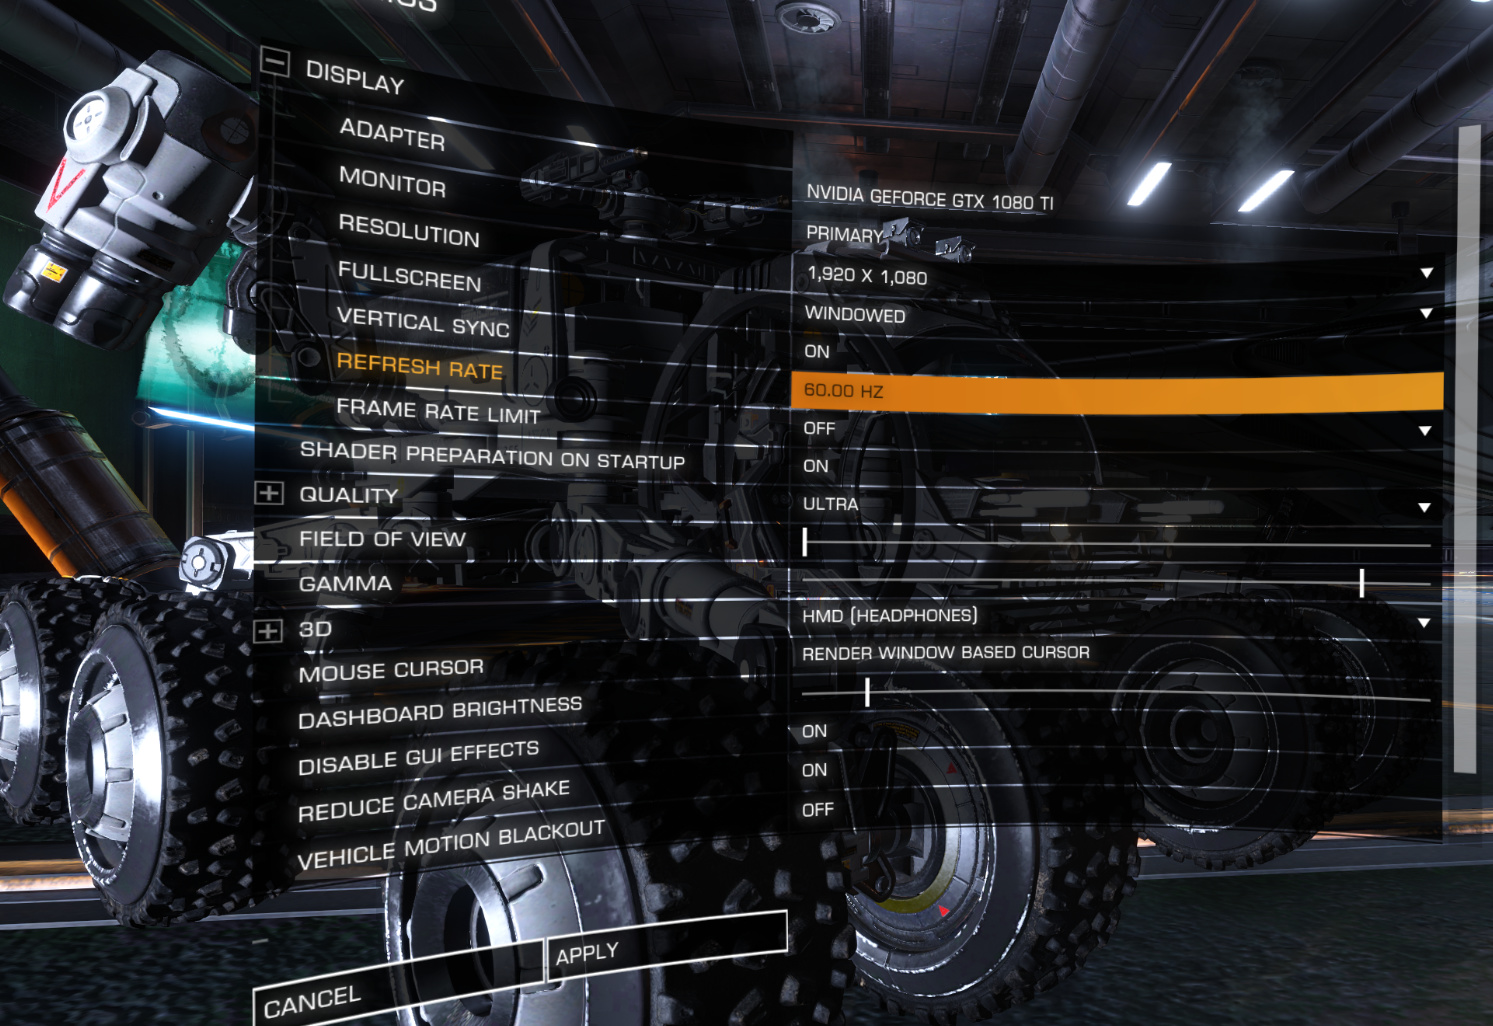 Additional testing with Elite Dangerous - VR content - Pimax